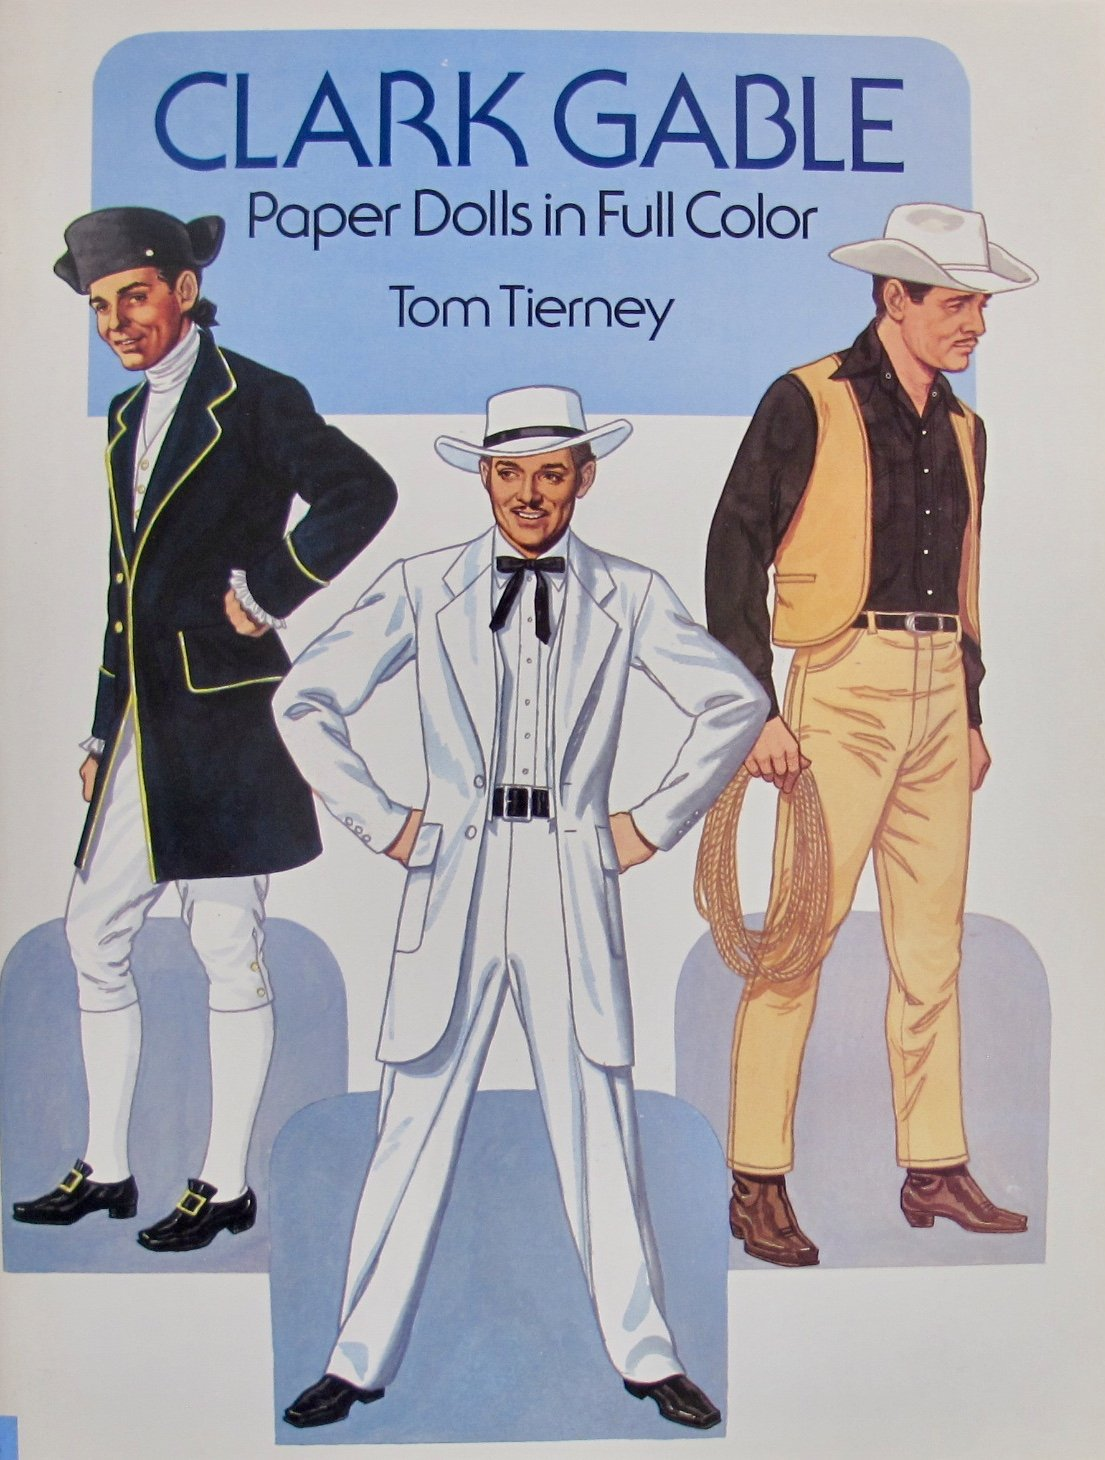 Tom Tierney CLARK GABLE PAPER DOLLS BOOK (UNCUT) in Full COLOR w 3 Card Stock PAPER DOLLS & FASHIONS to Cut-Out (1986 Dover)